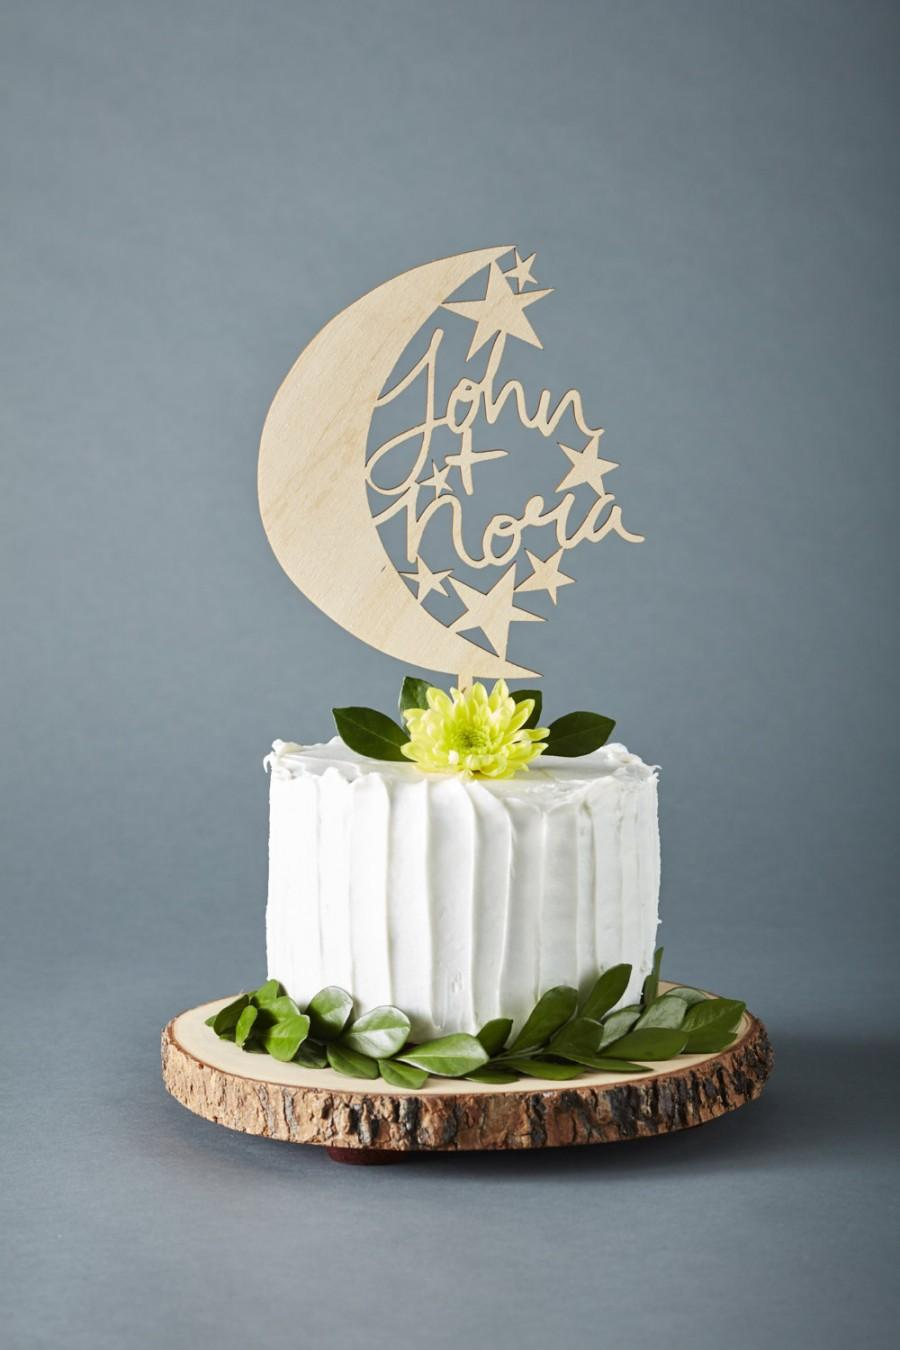 Mariage - Cake Topper Custom Wedding - Moon and Stars Wedding Cake Topper - Wooden Cake Topper  - Hand-lettered Personalized Cake Topper